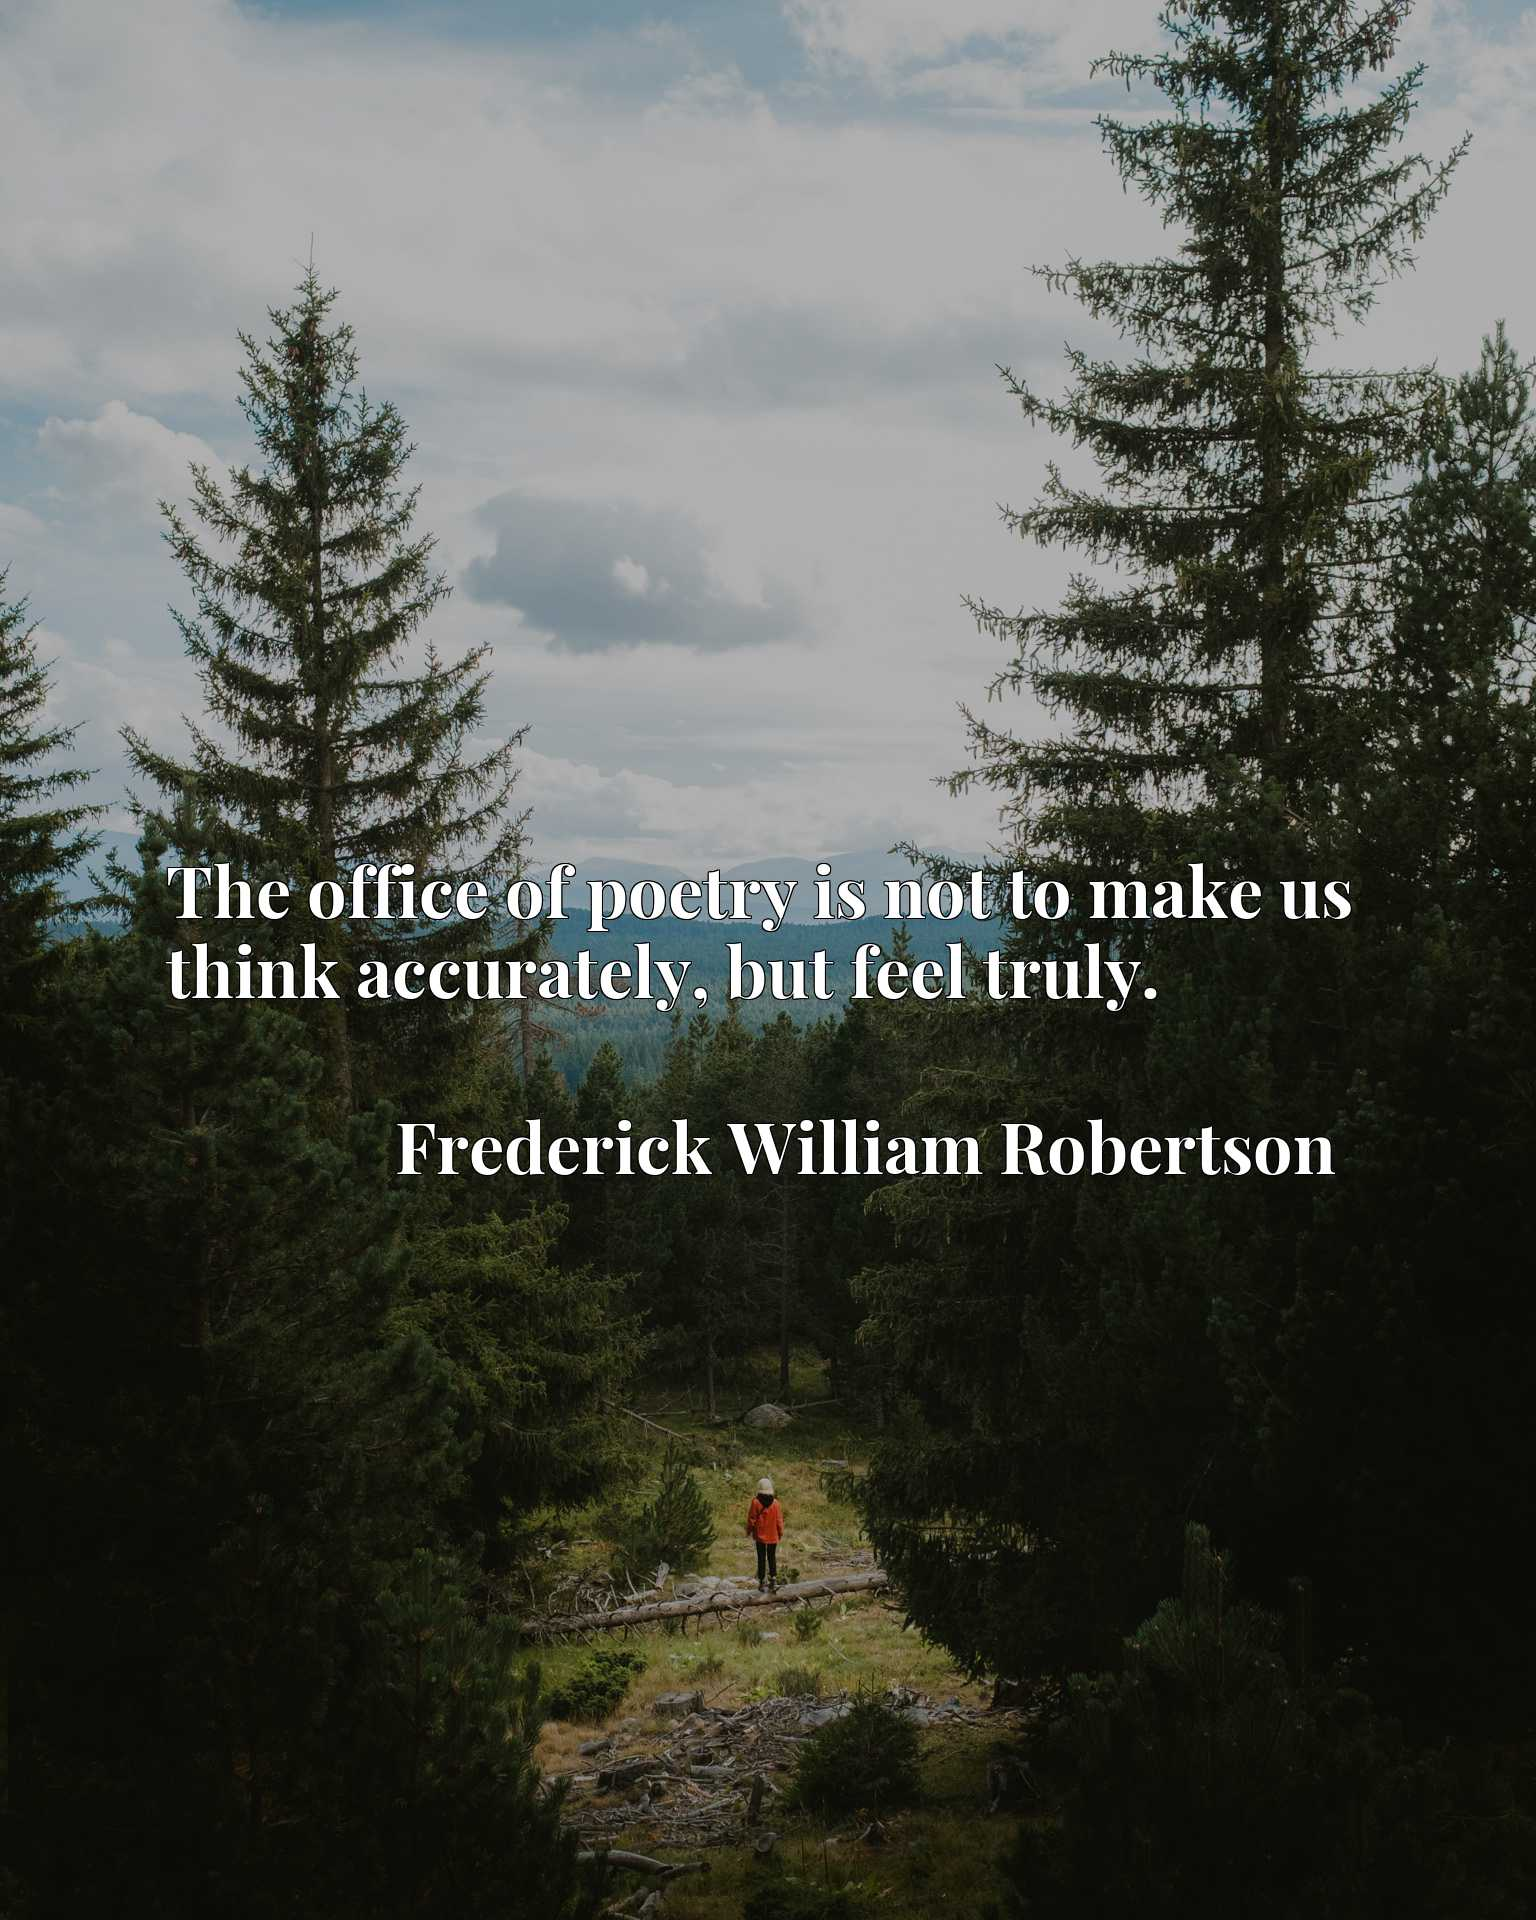 Quote Picture :The office of poetry is not to make us think accurately, but feel truly.